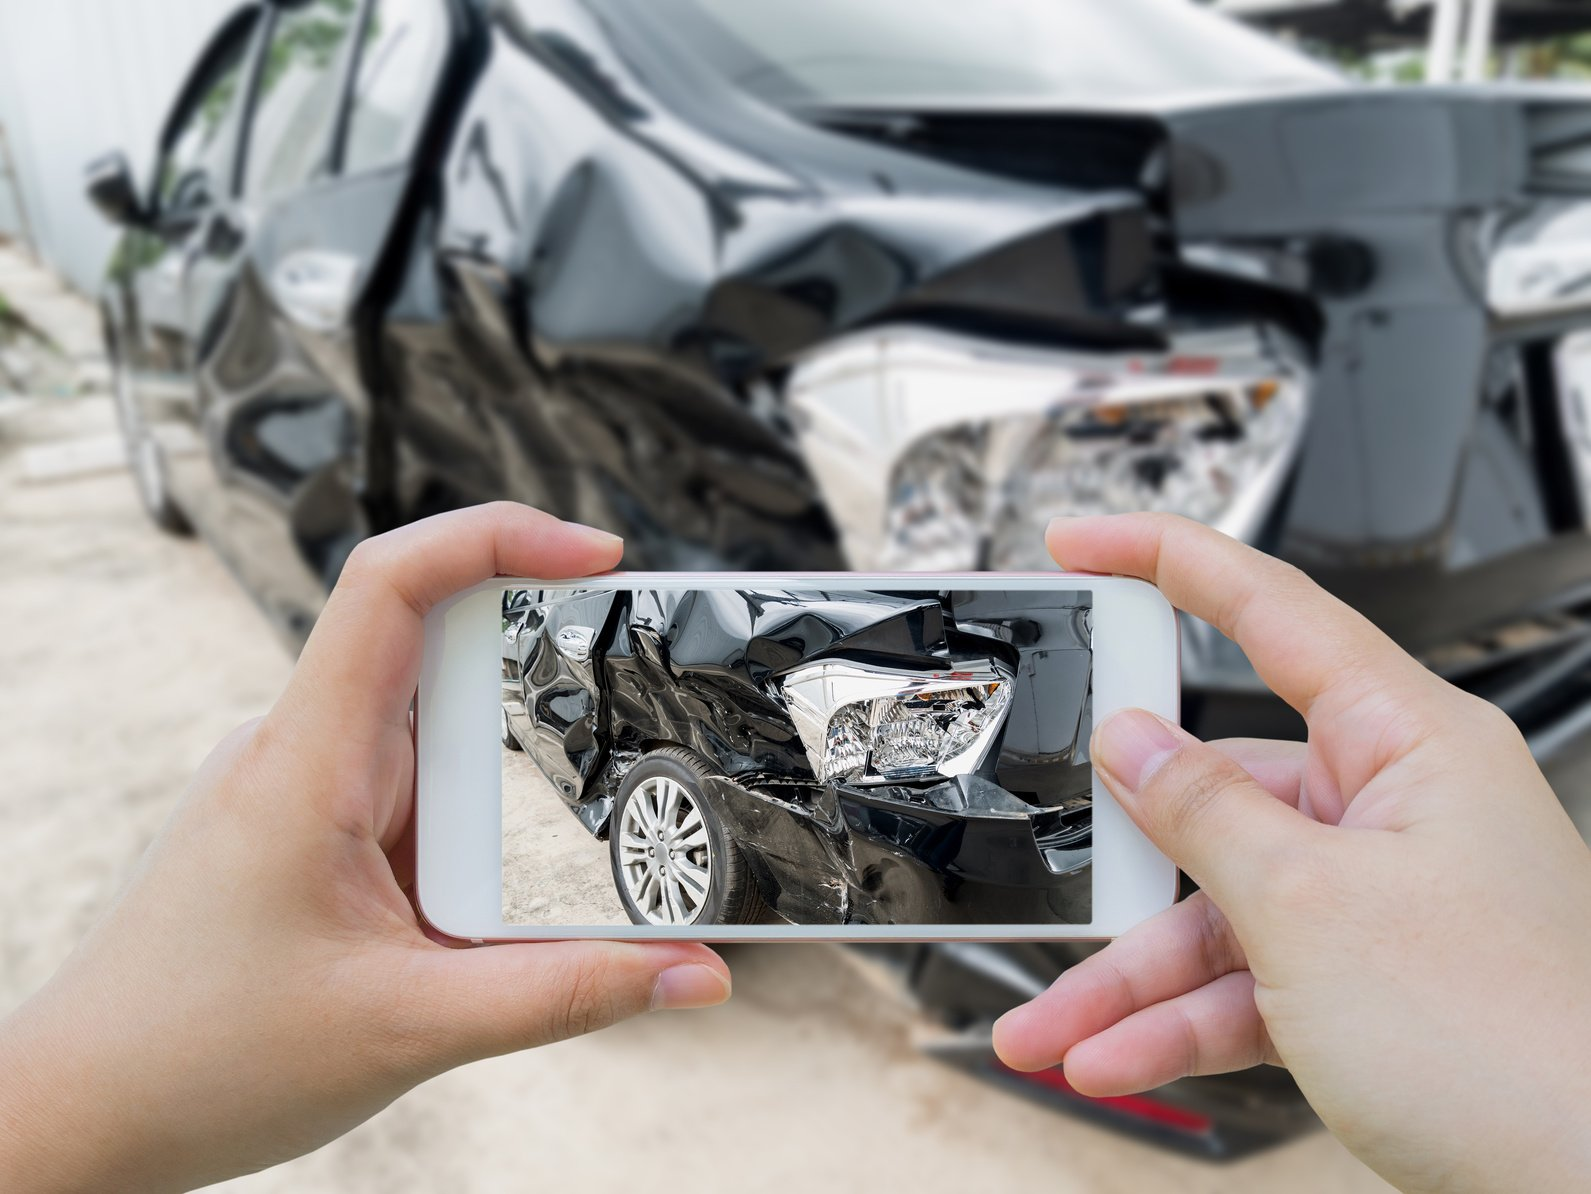 Car crash accident damaged with hand using smartphone taking photo before contacting a dedicated Sheffield Village auto accidents lawyer